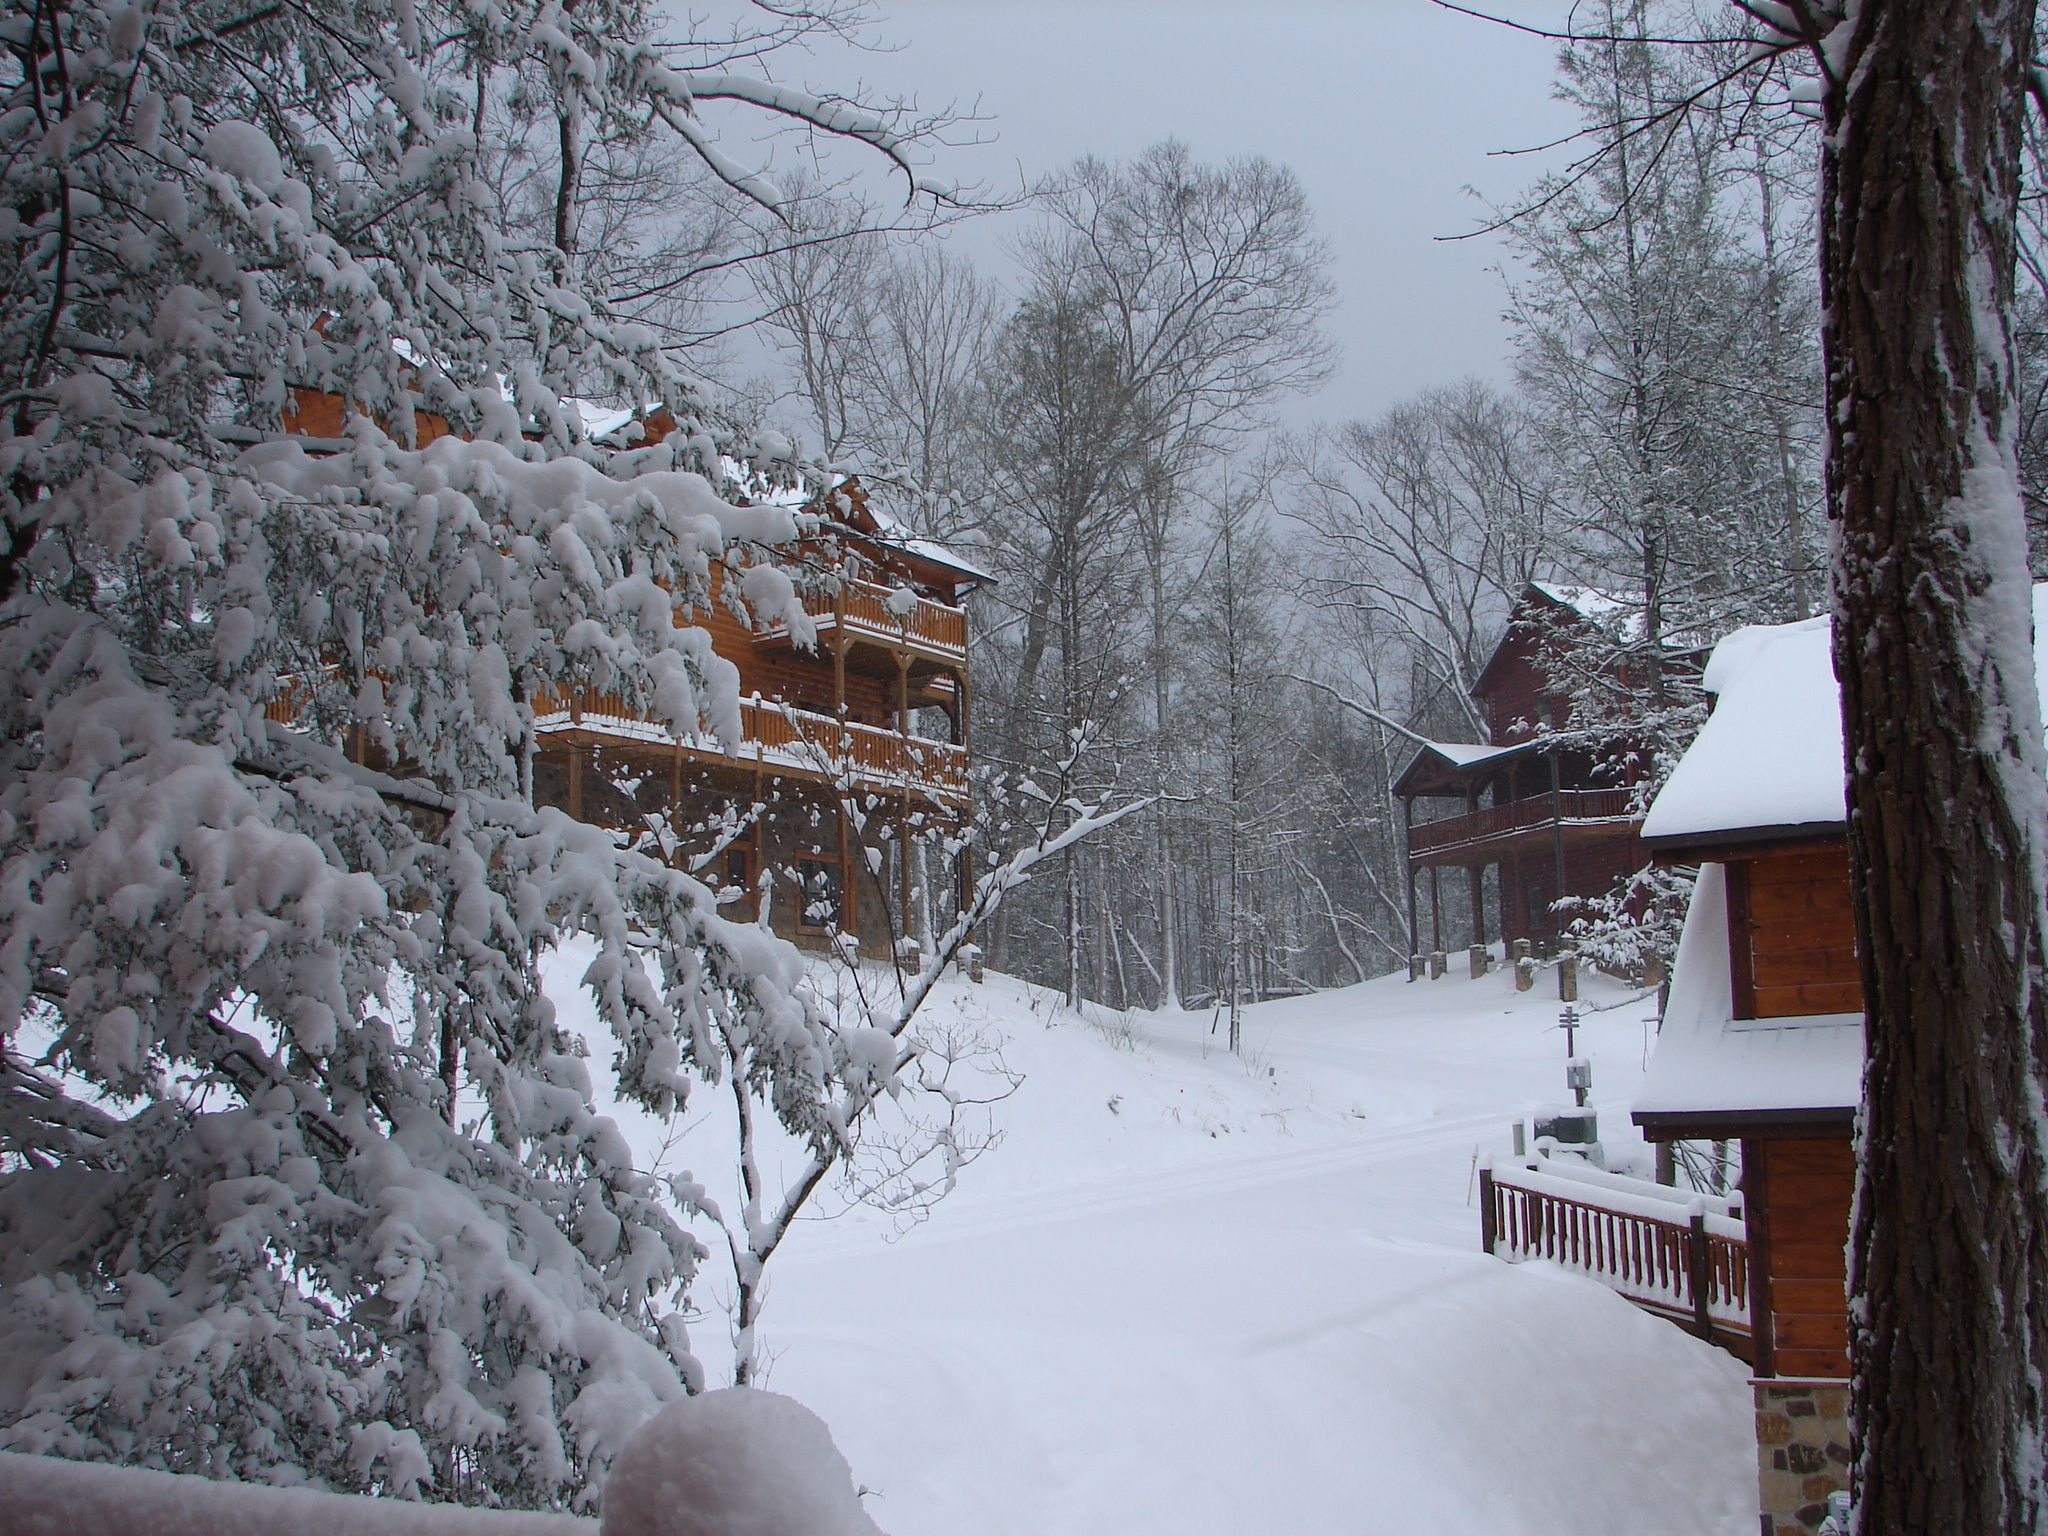 Gatlinburg Tn | Get Snowed Into A Luxury Cabin This Winter In Gatlinburg, TN